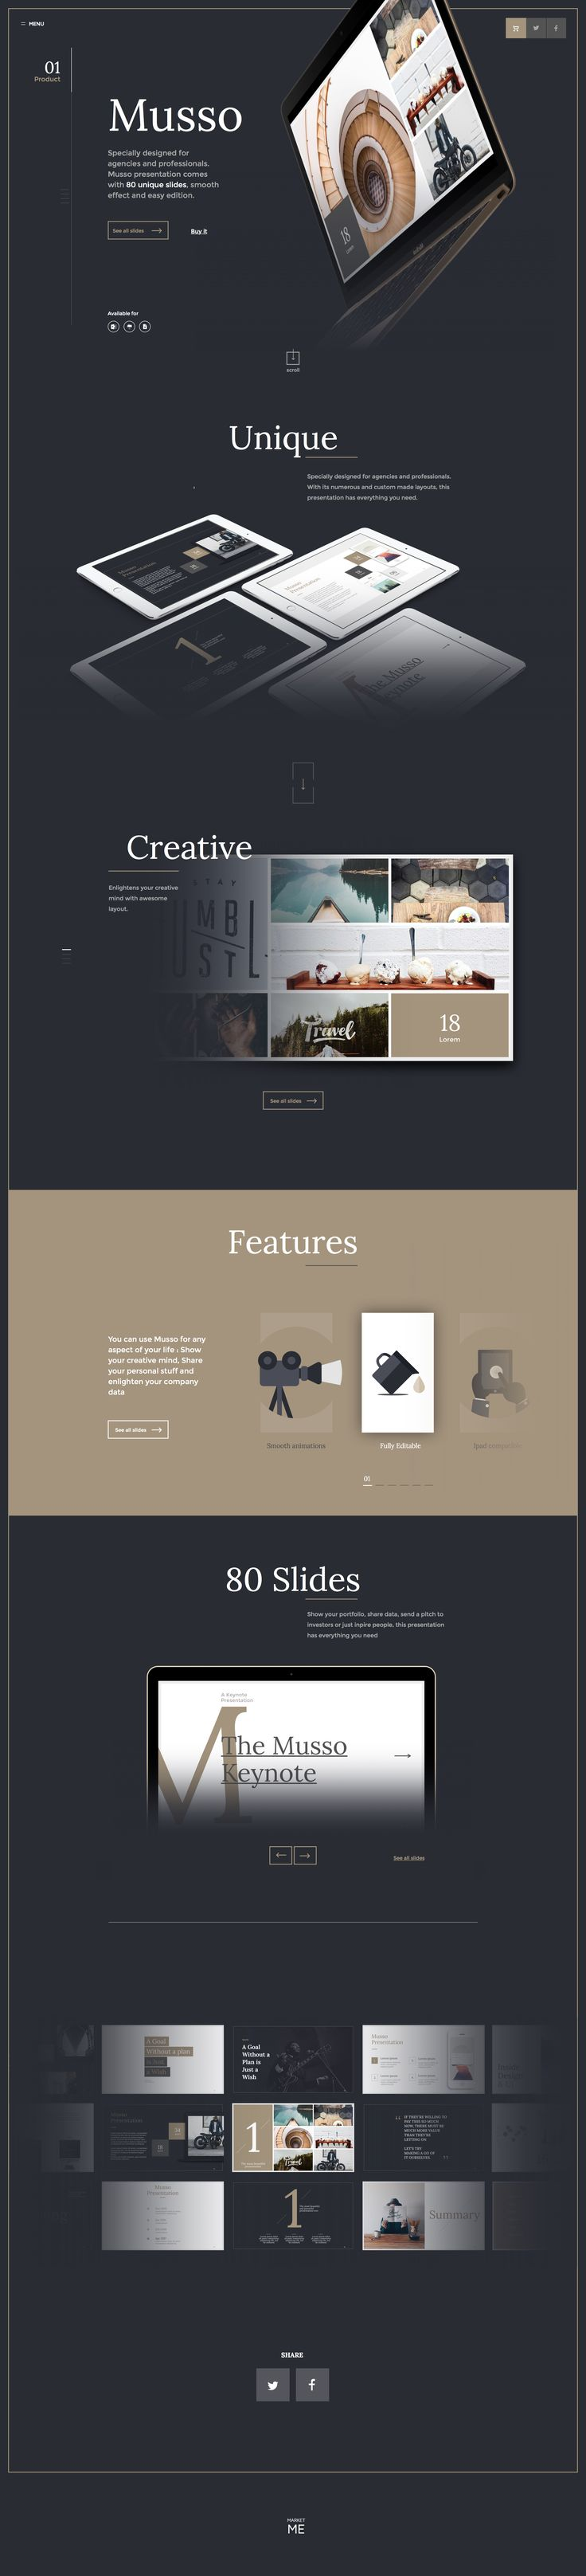 Mussso Presentation Keynote Ui kit, by Barthelmy Chalvet